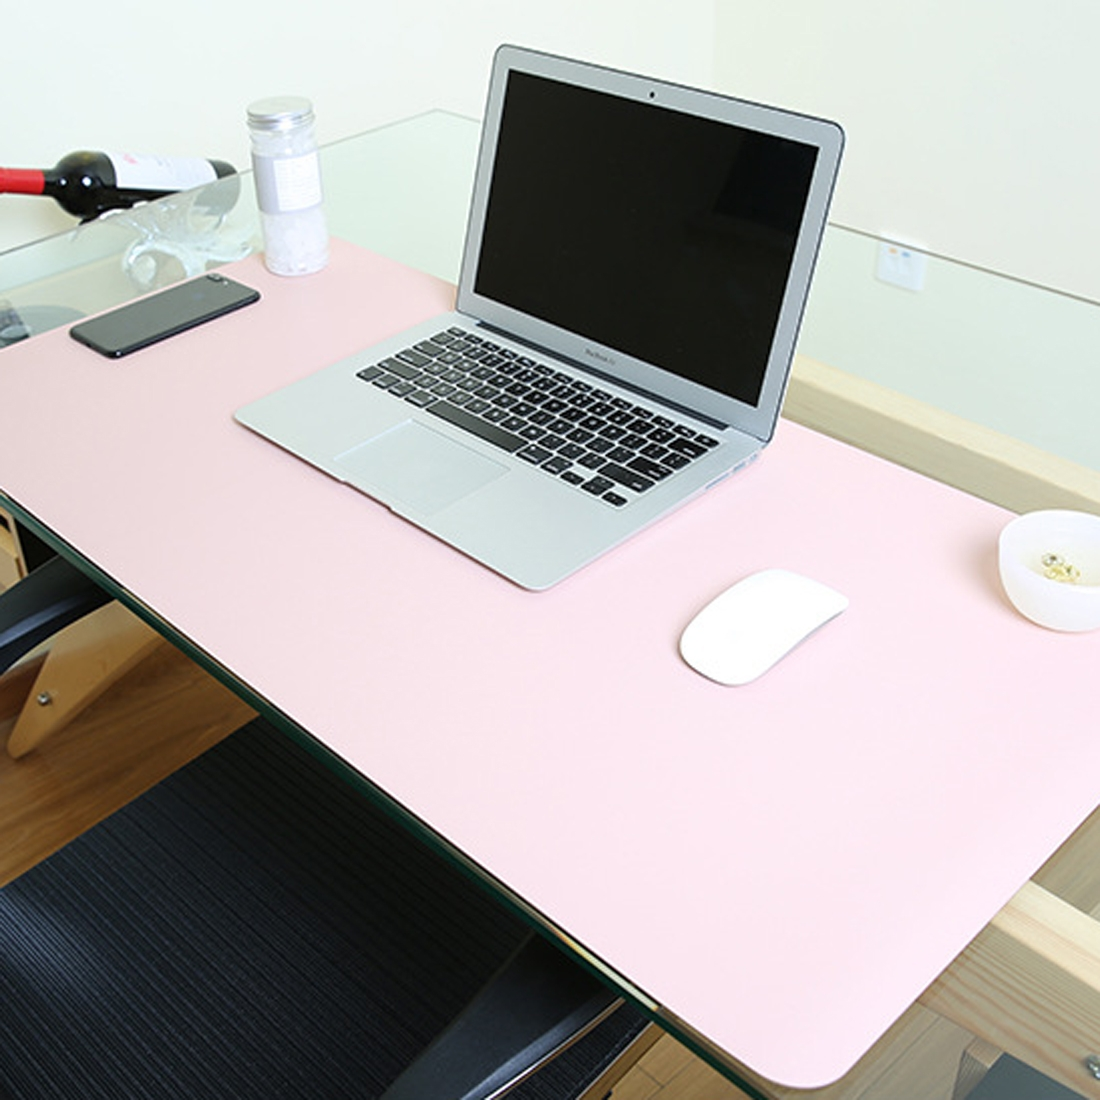 Multifunction Business Pvc Leather Mouse Pad Keyboard Pad